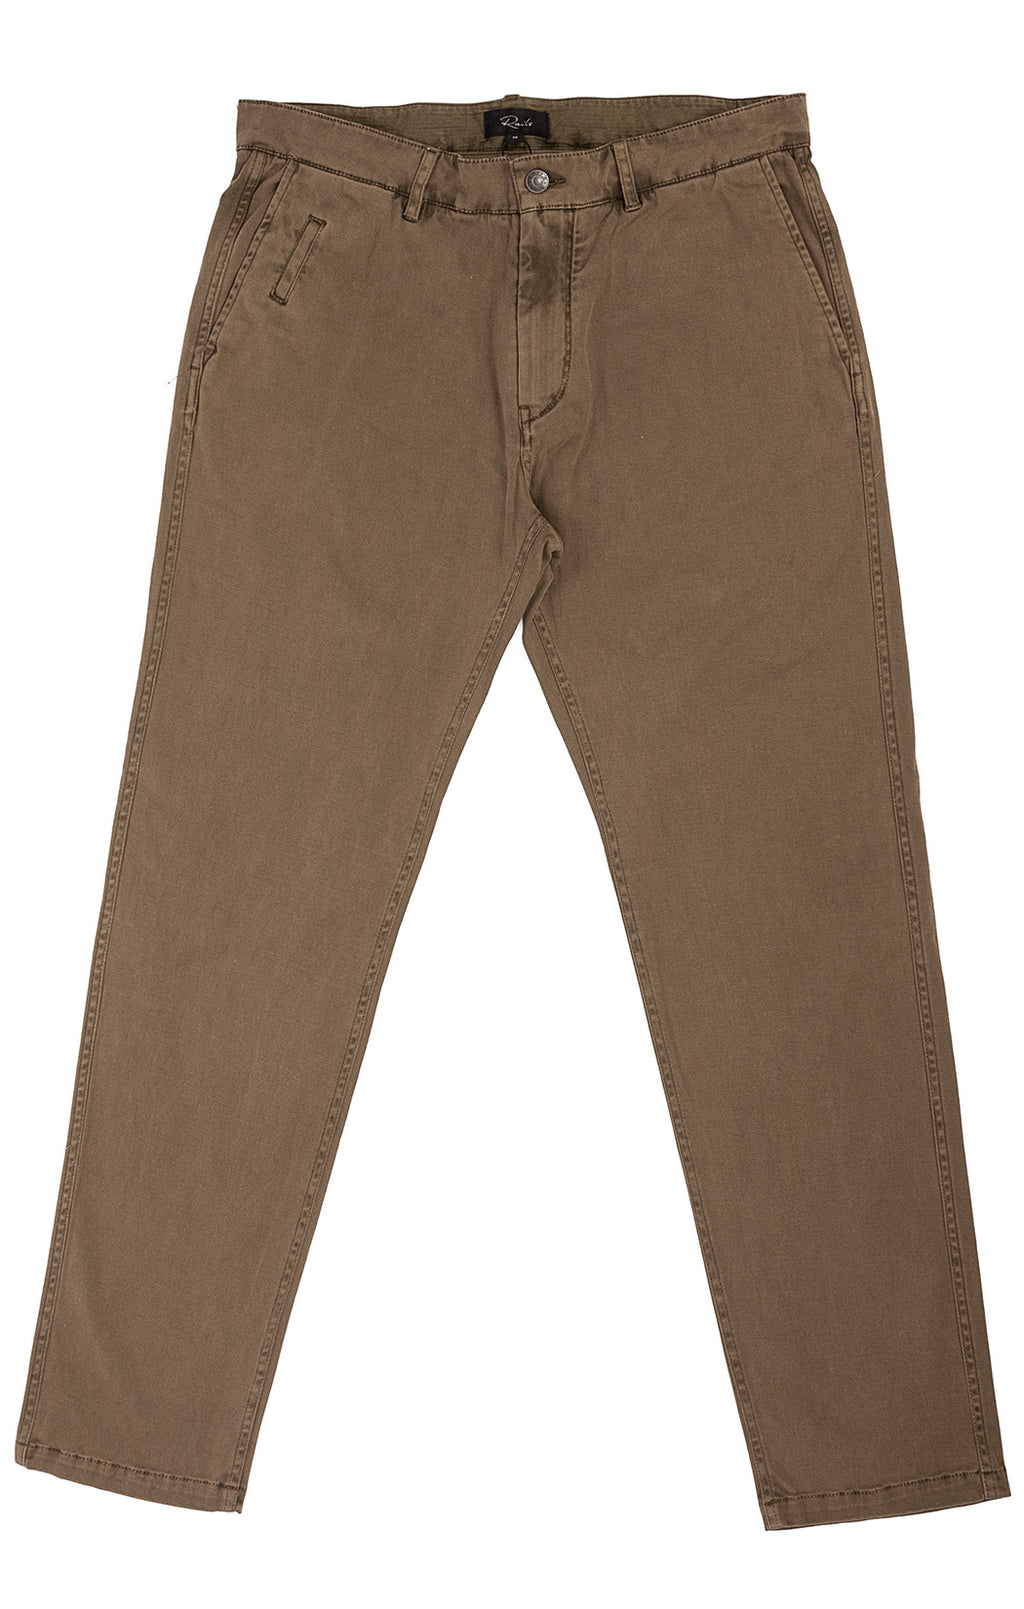 Olive green pants with side and back pockets